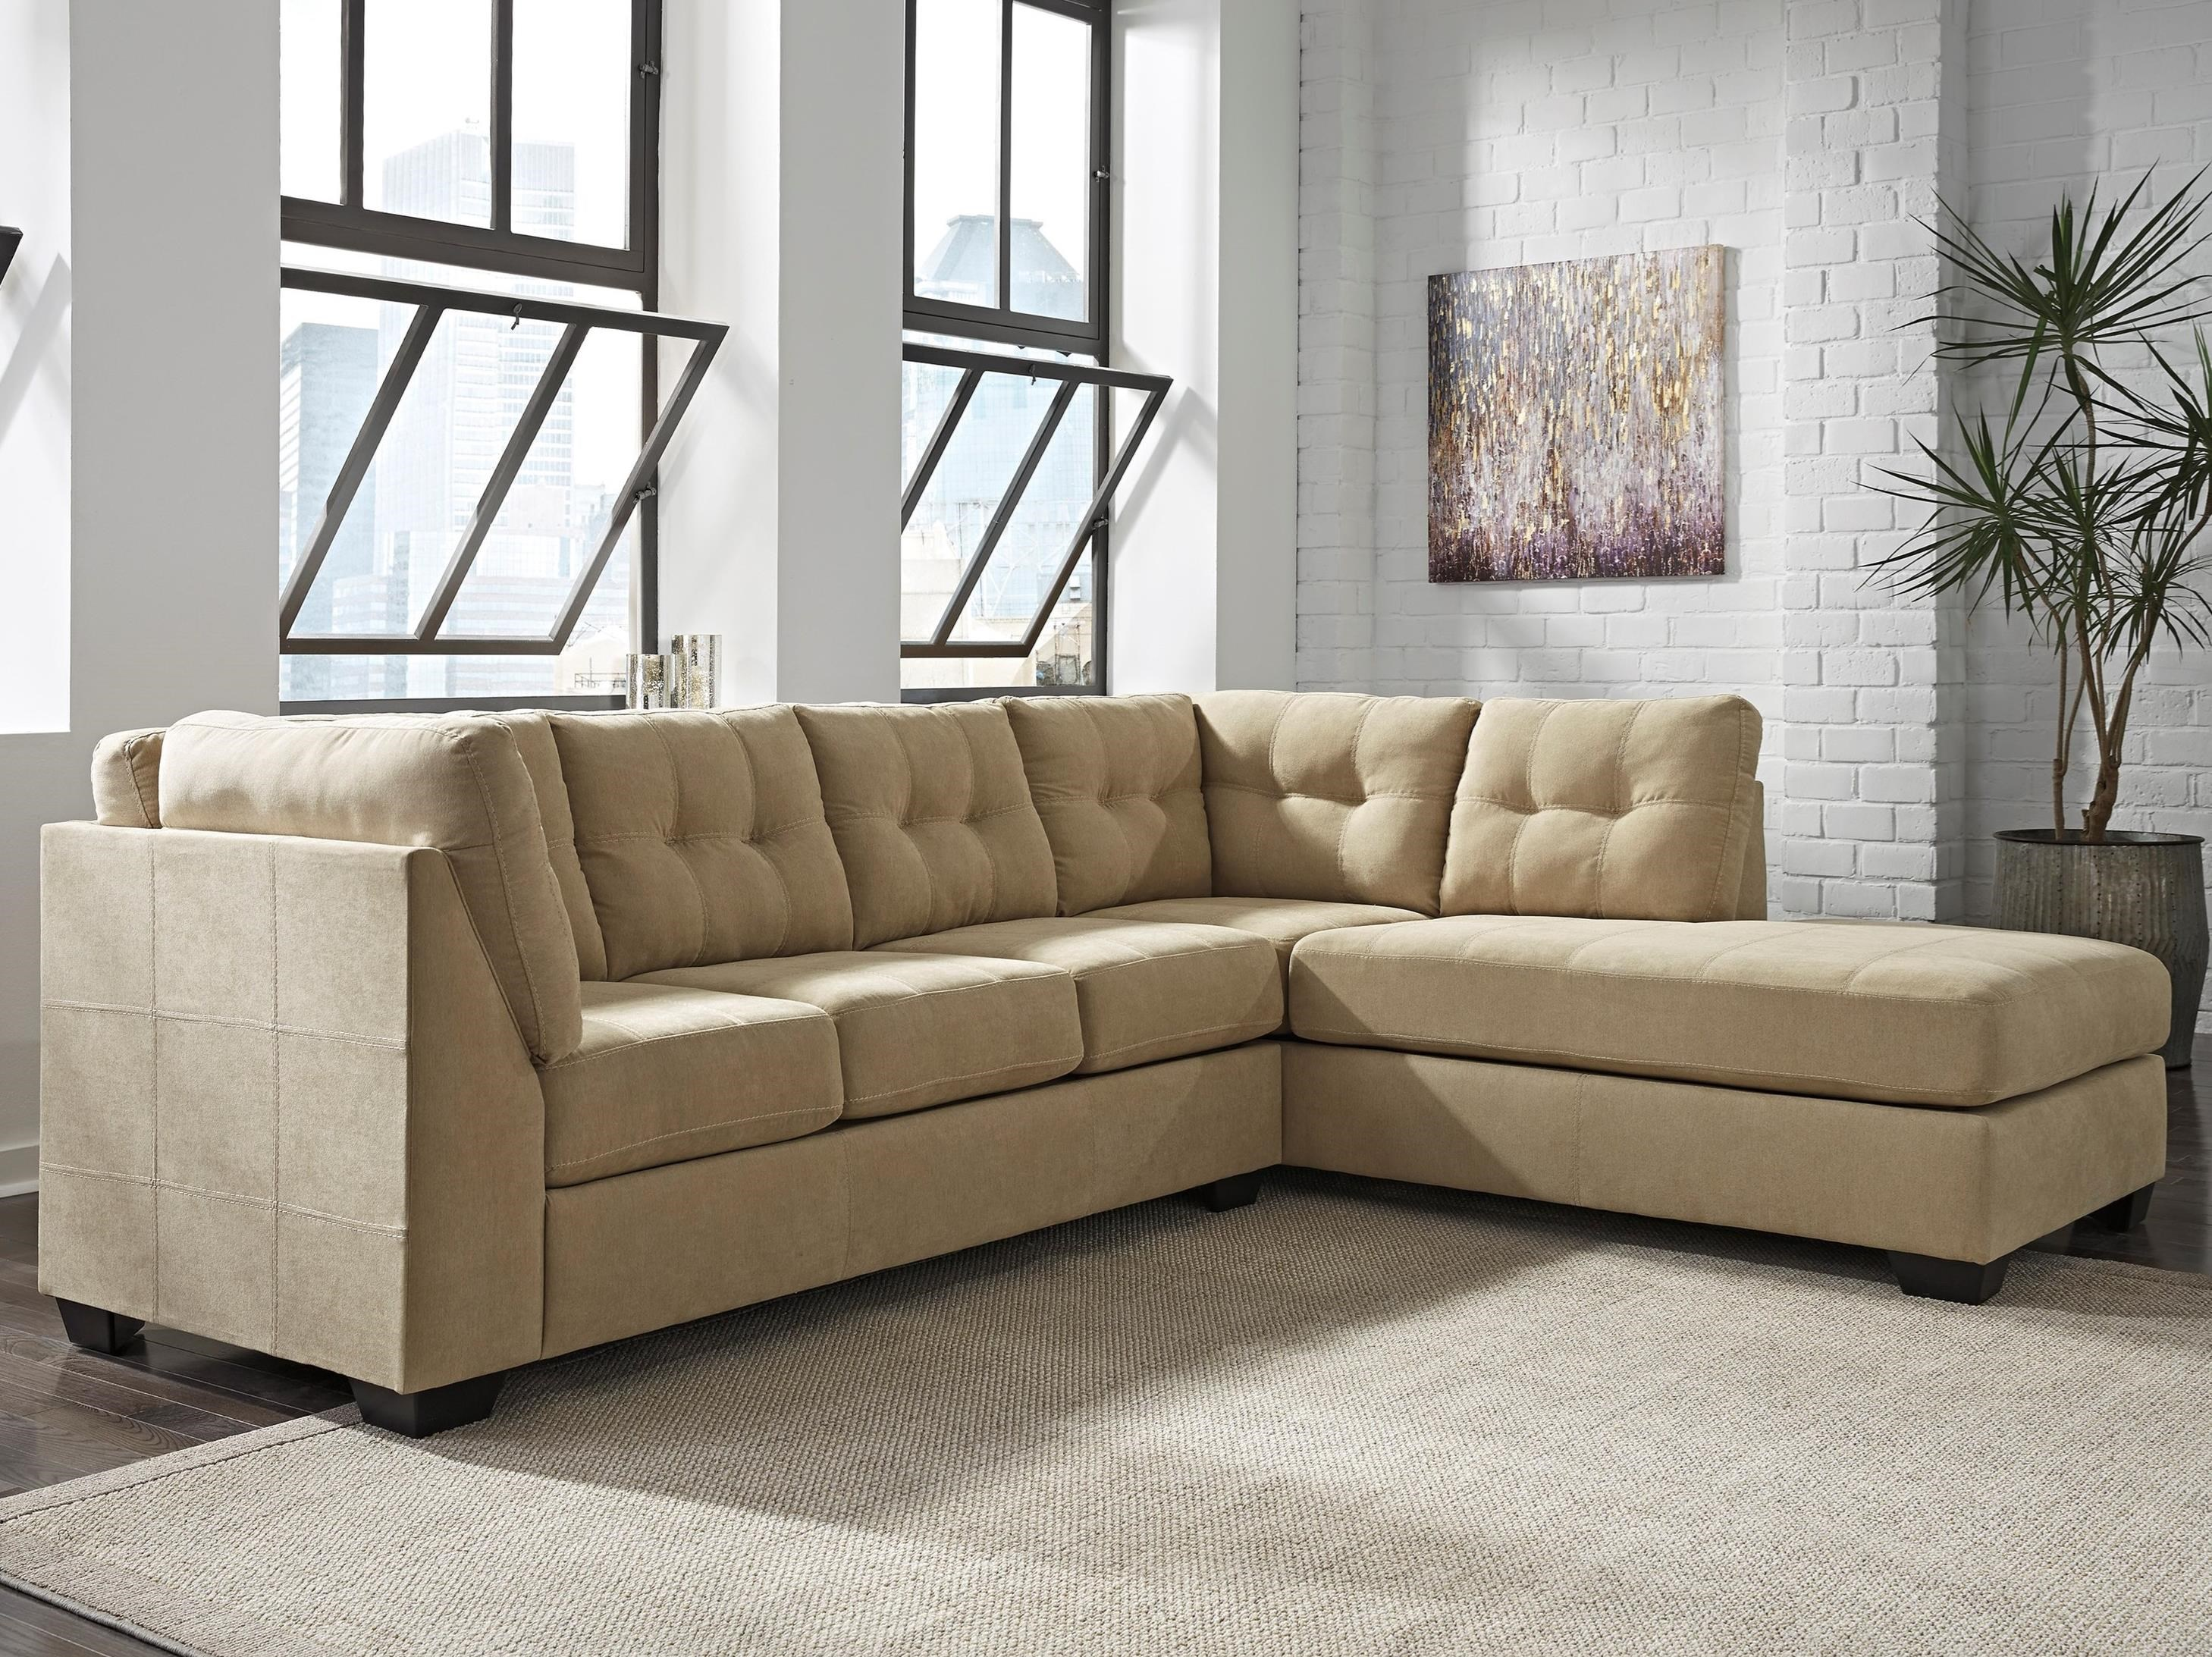 benchcraft maier cocoa 2piece sectional with right chaise item number